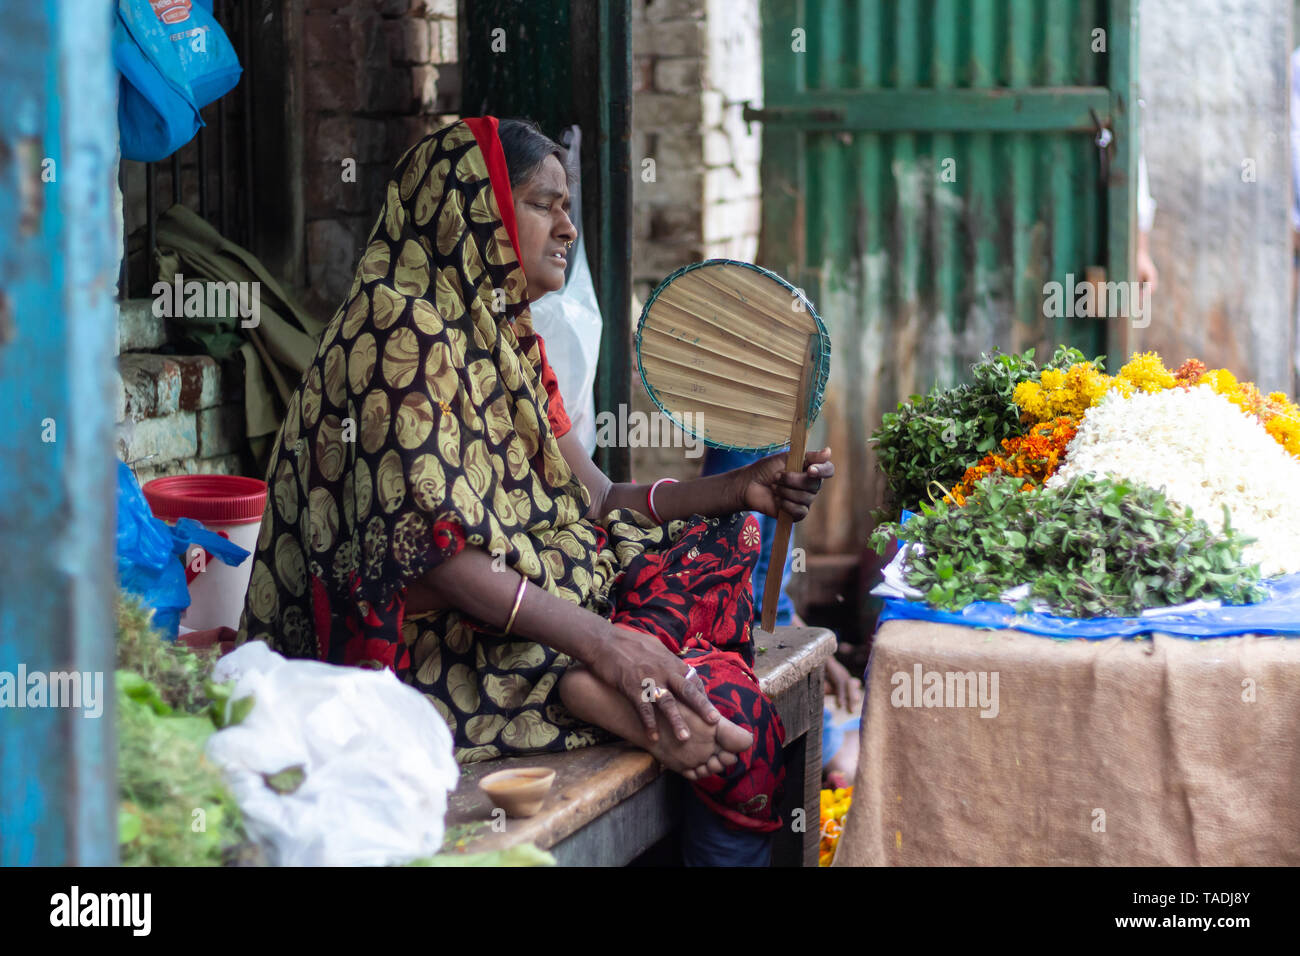 Old Indian woman expressing distress from high temperatures fanning herself in the market selling plants and flowers. Stock Photo